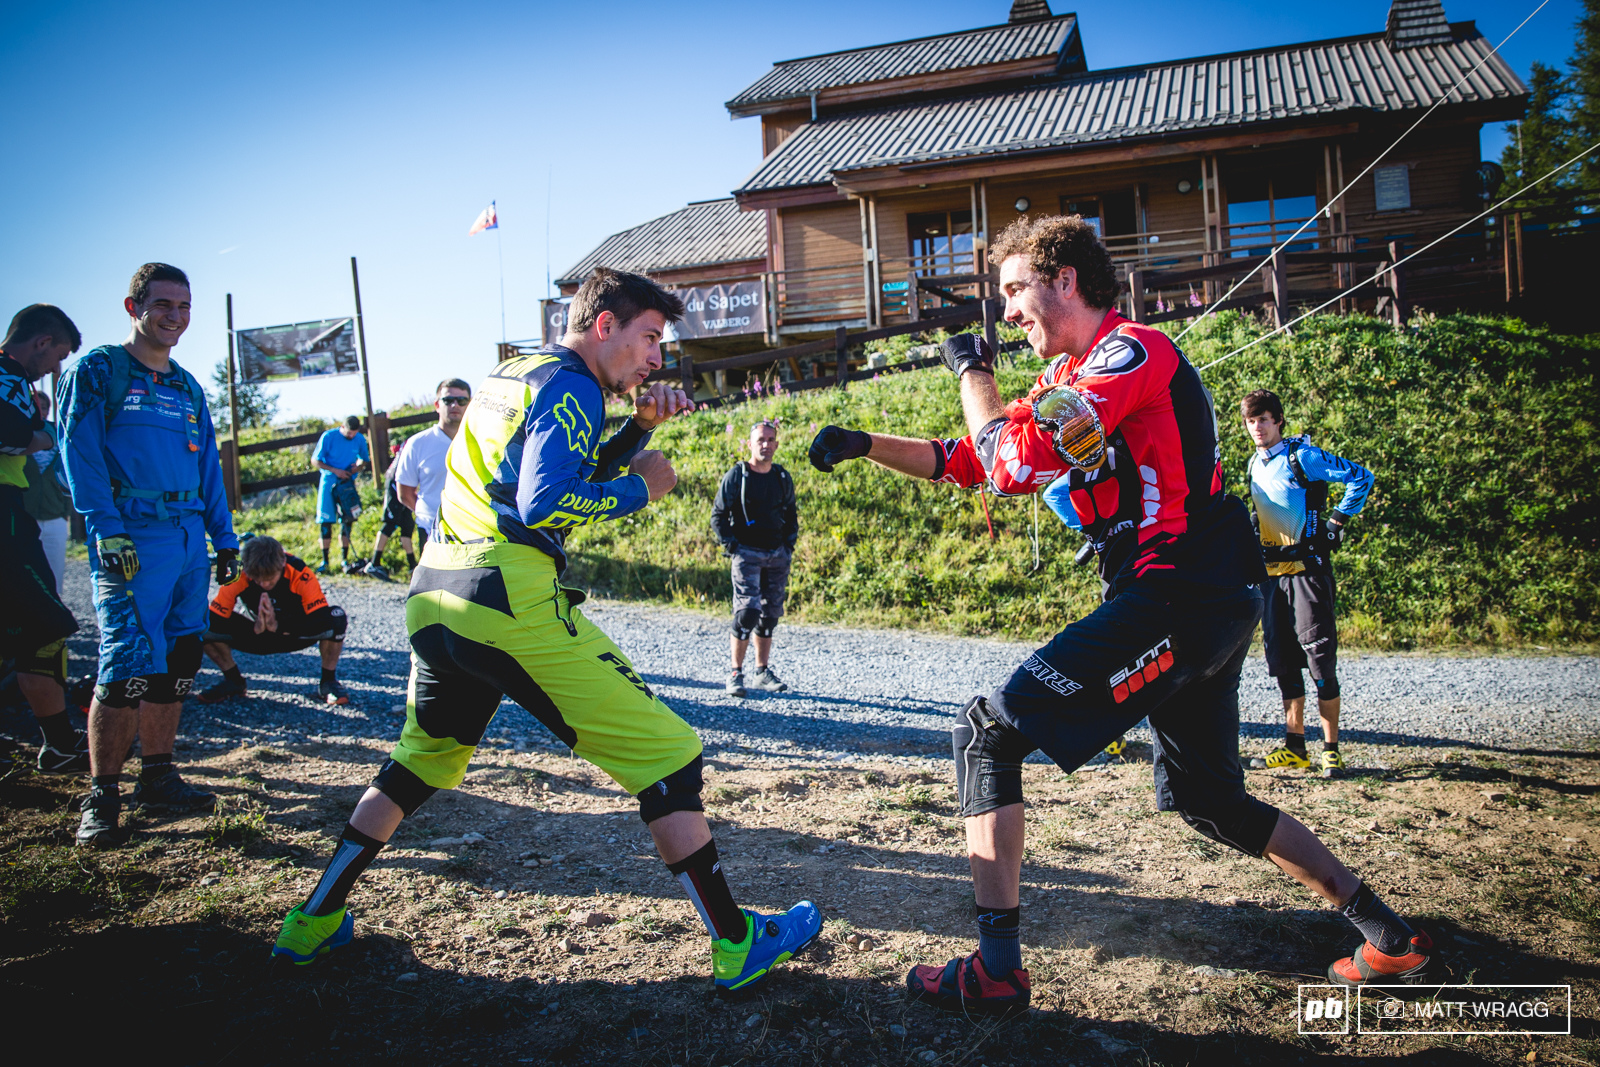 Everyone had their routine to get warmed up for racing - Damien Oton and Thomas Lapeyrie went for some sparring to get the blood flowing...